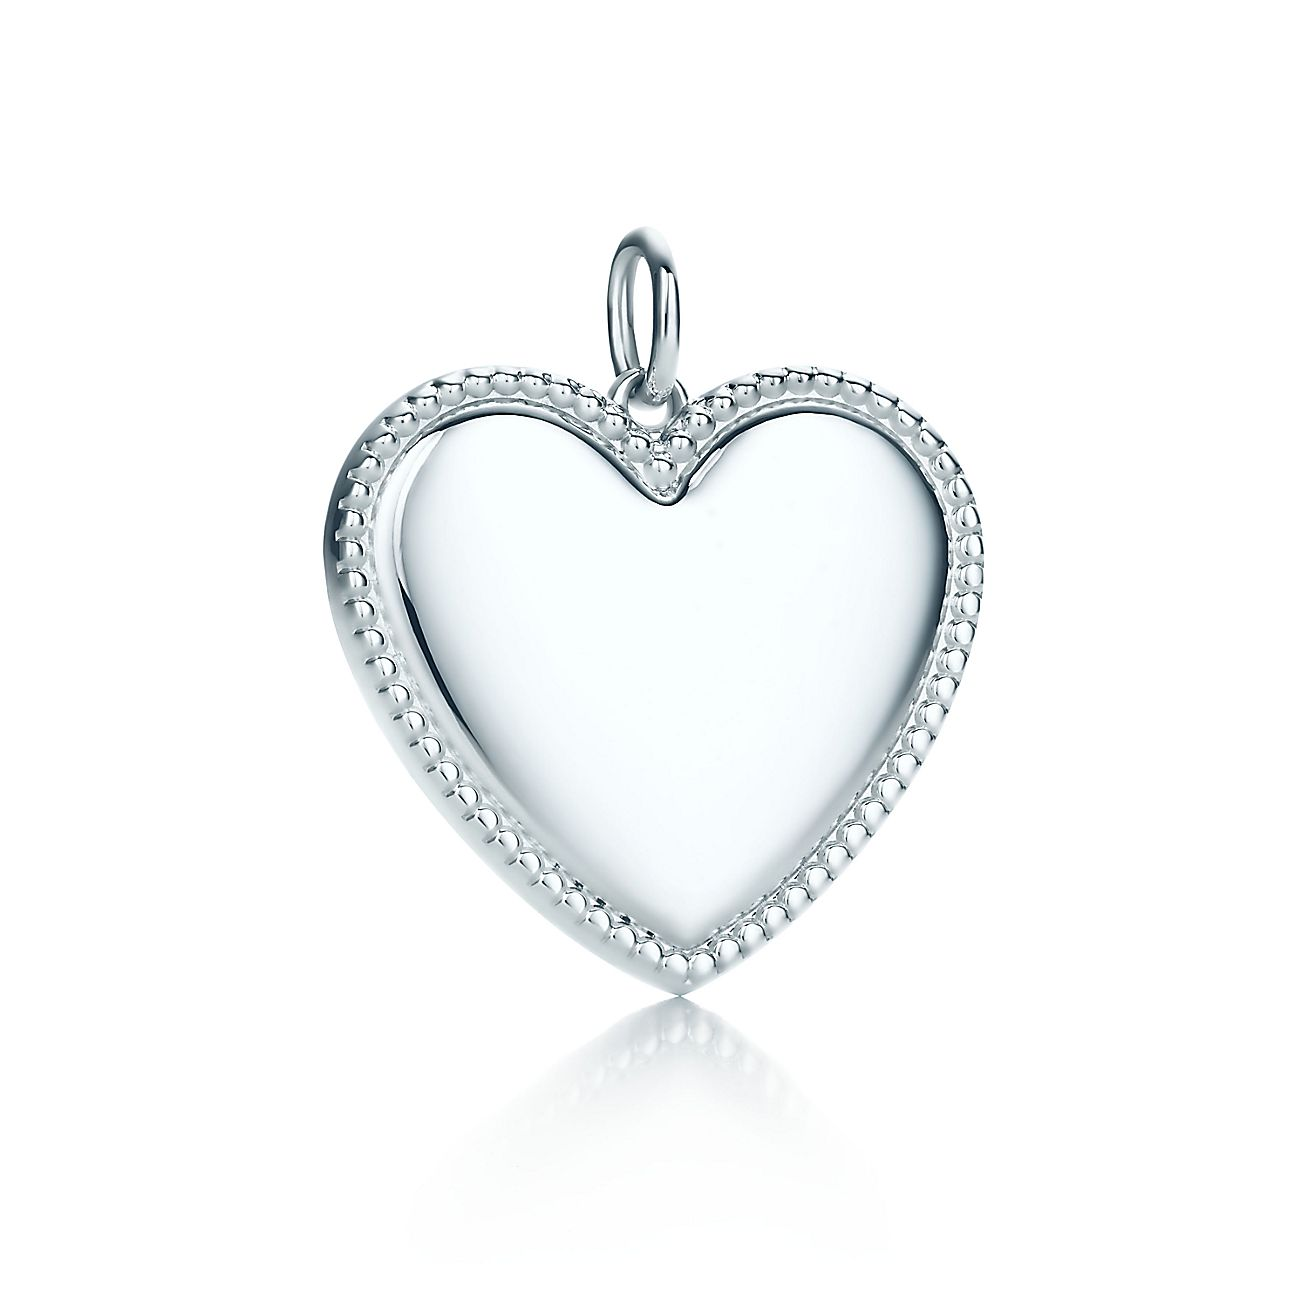 Tiffany Yours<br>heart charm